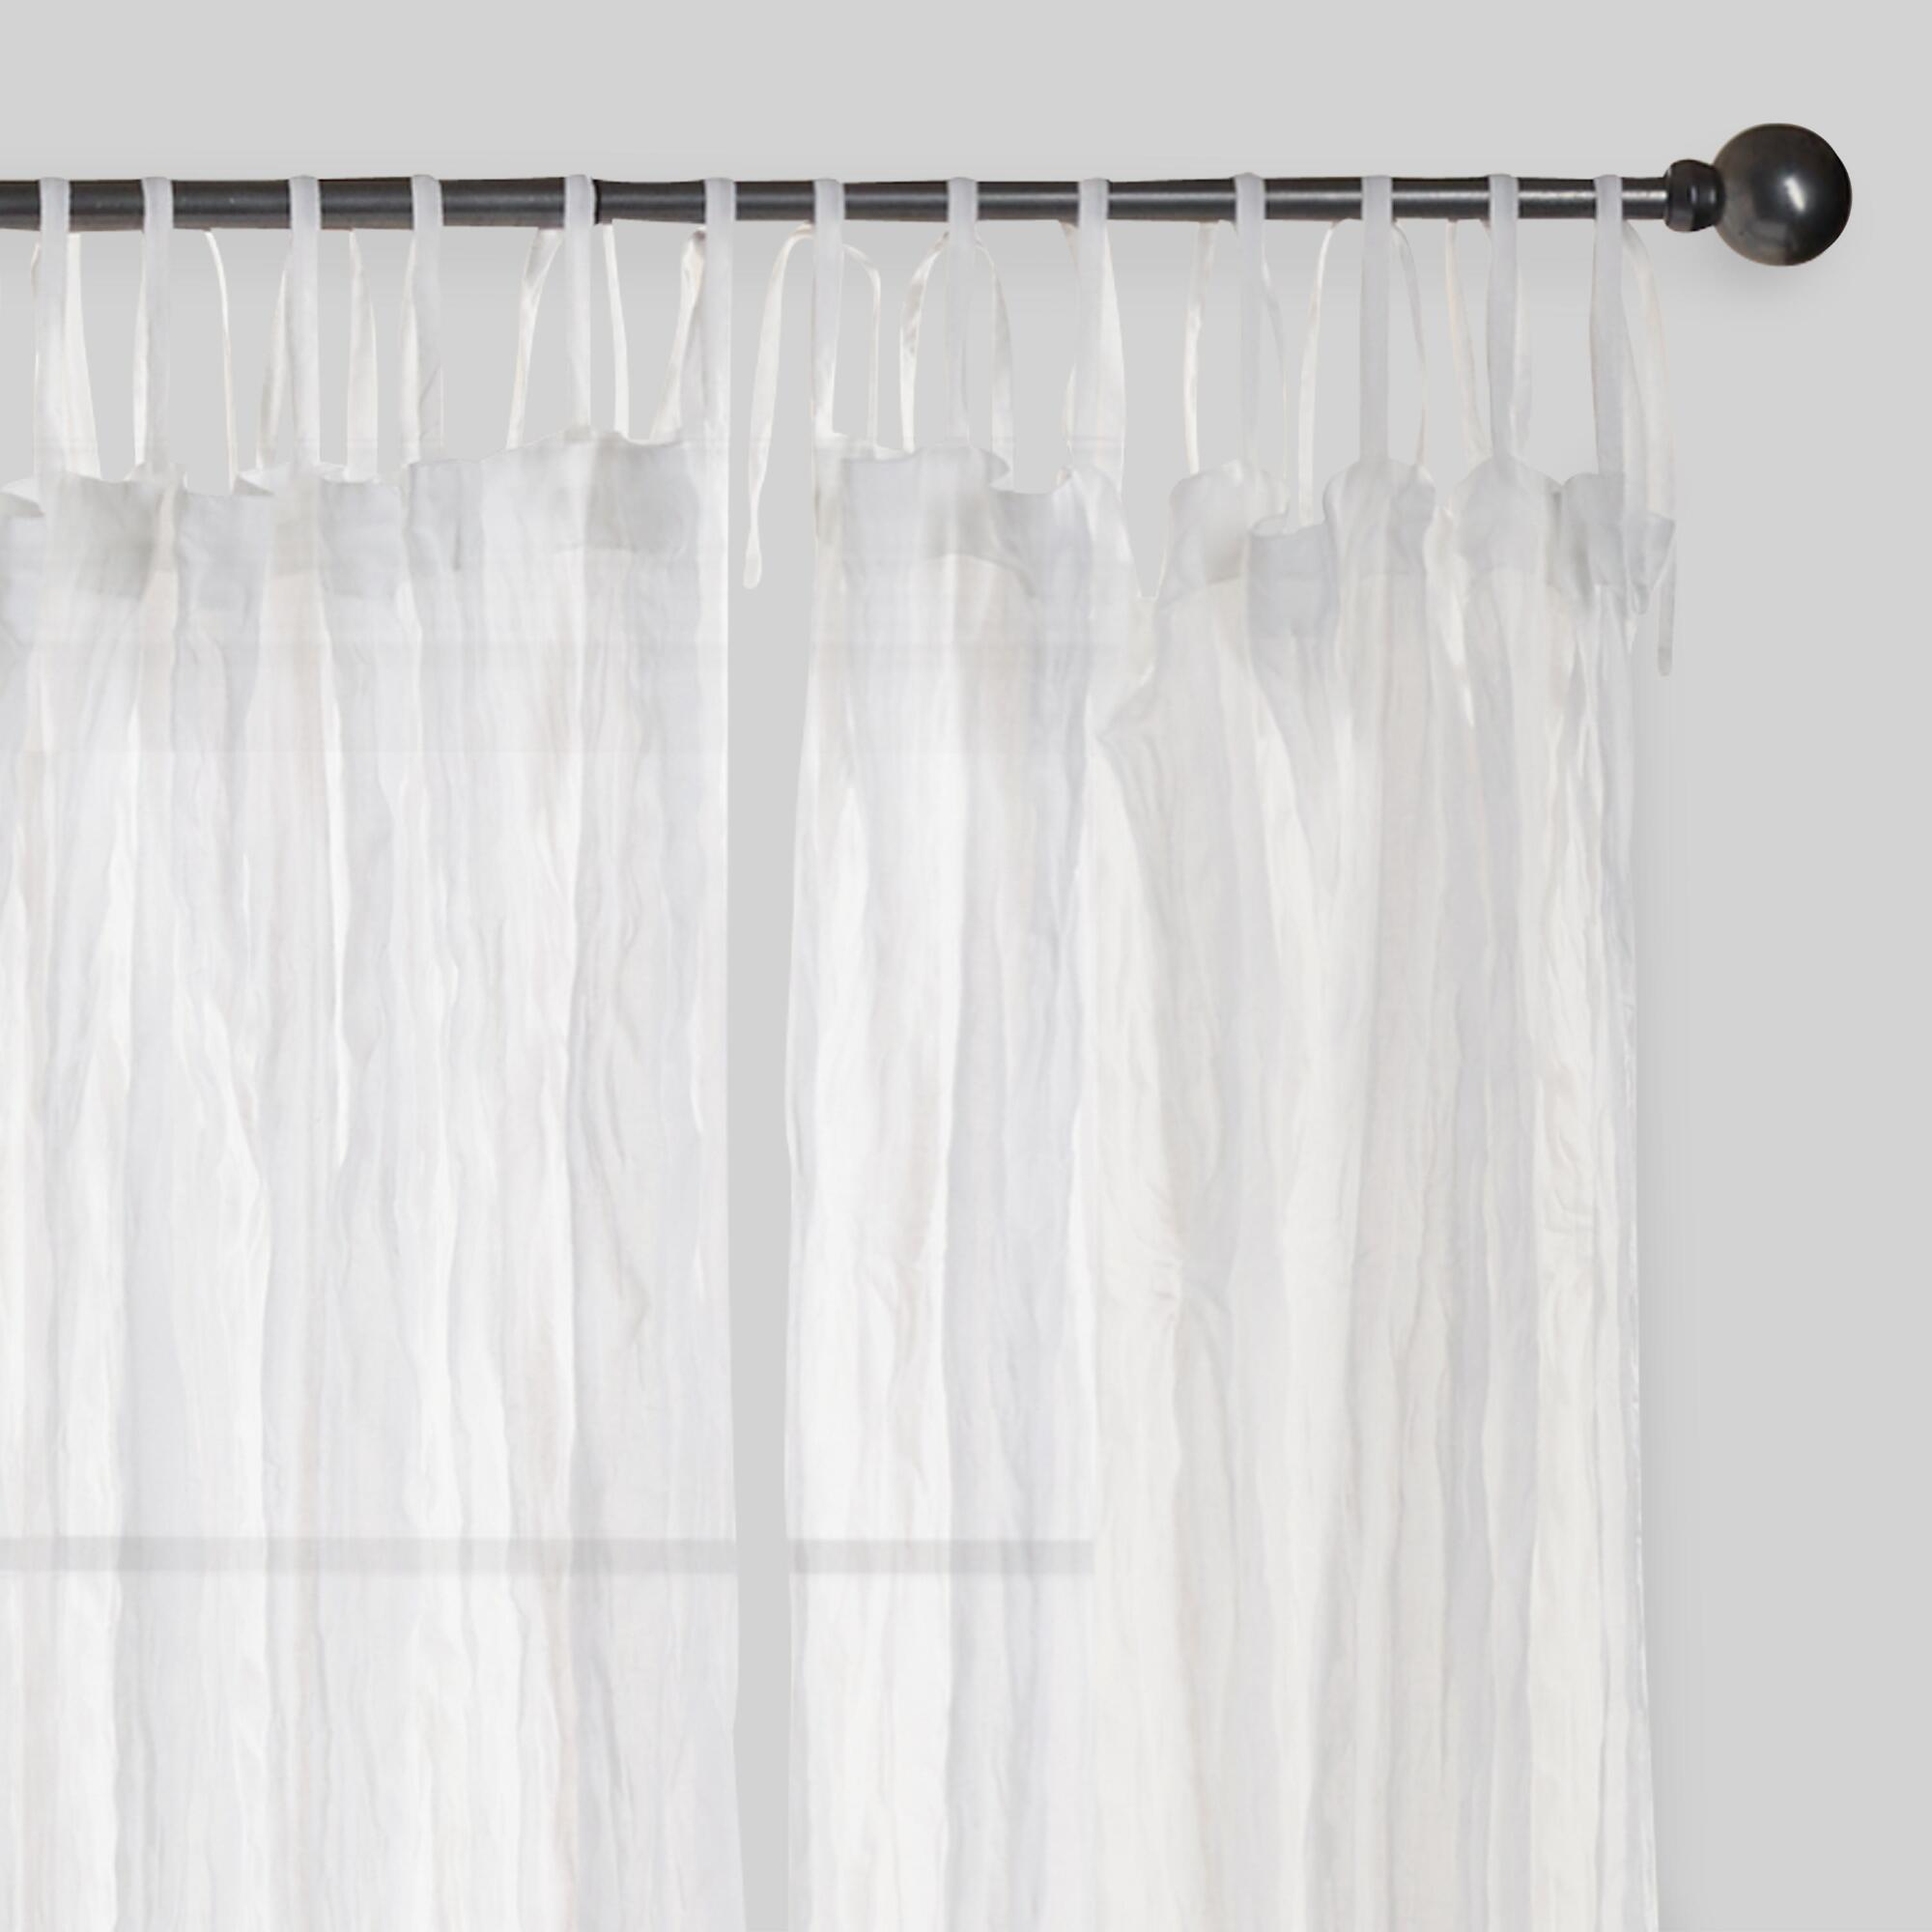 cm product catalog curtains id s usd curtain view inch adjustable bronze polished rod single umbra marbello